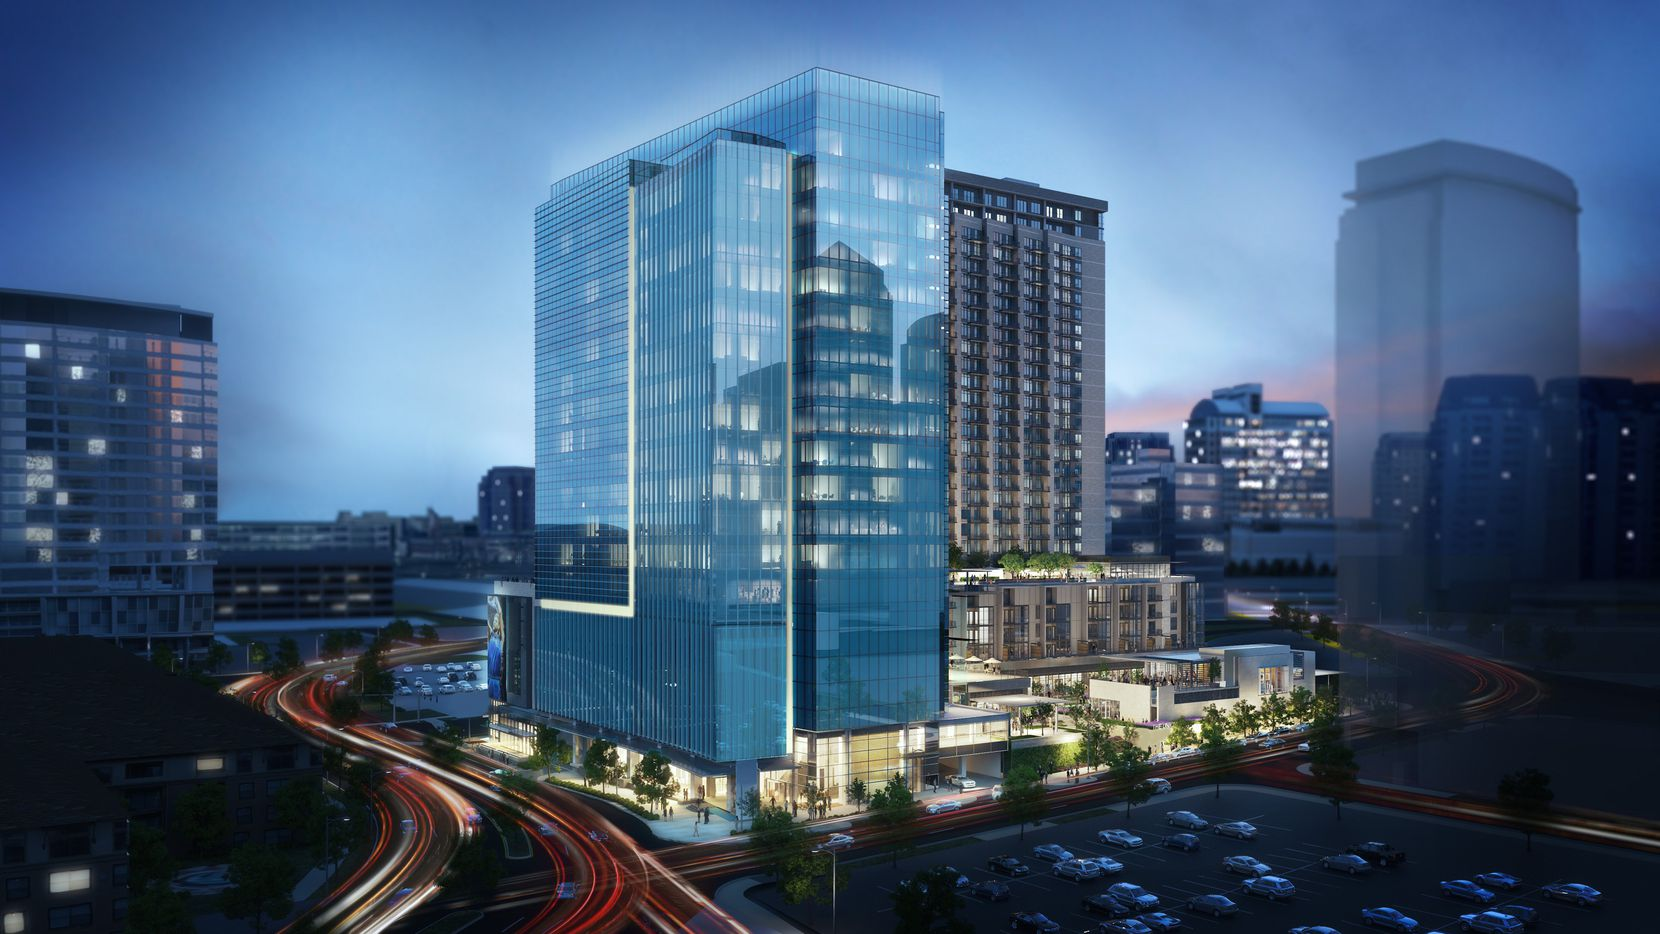 Akin Gump is leasing three floors in The Union Dallas, scheduled to open next year at Field Street and Cedar Springs Road.